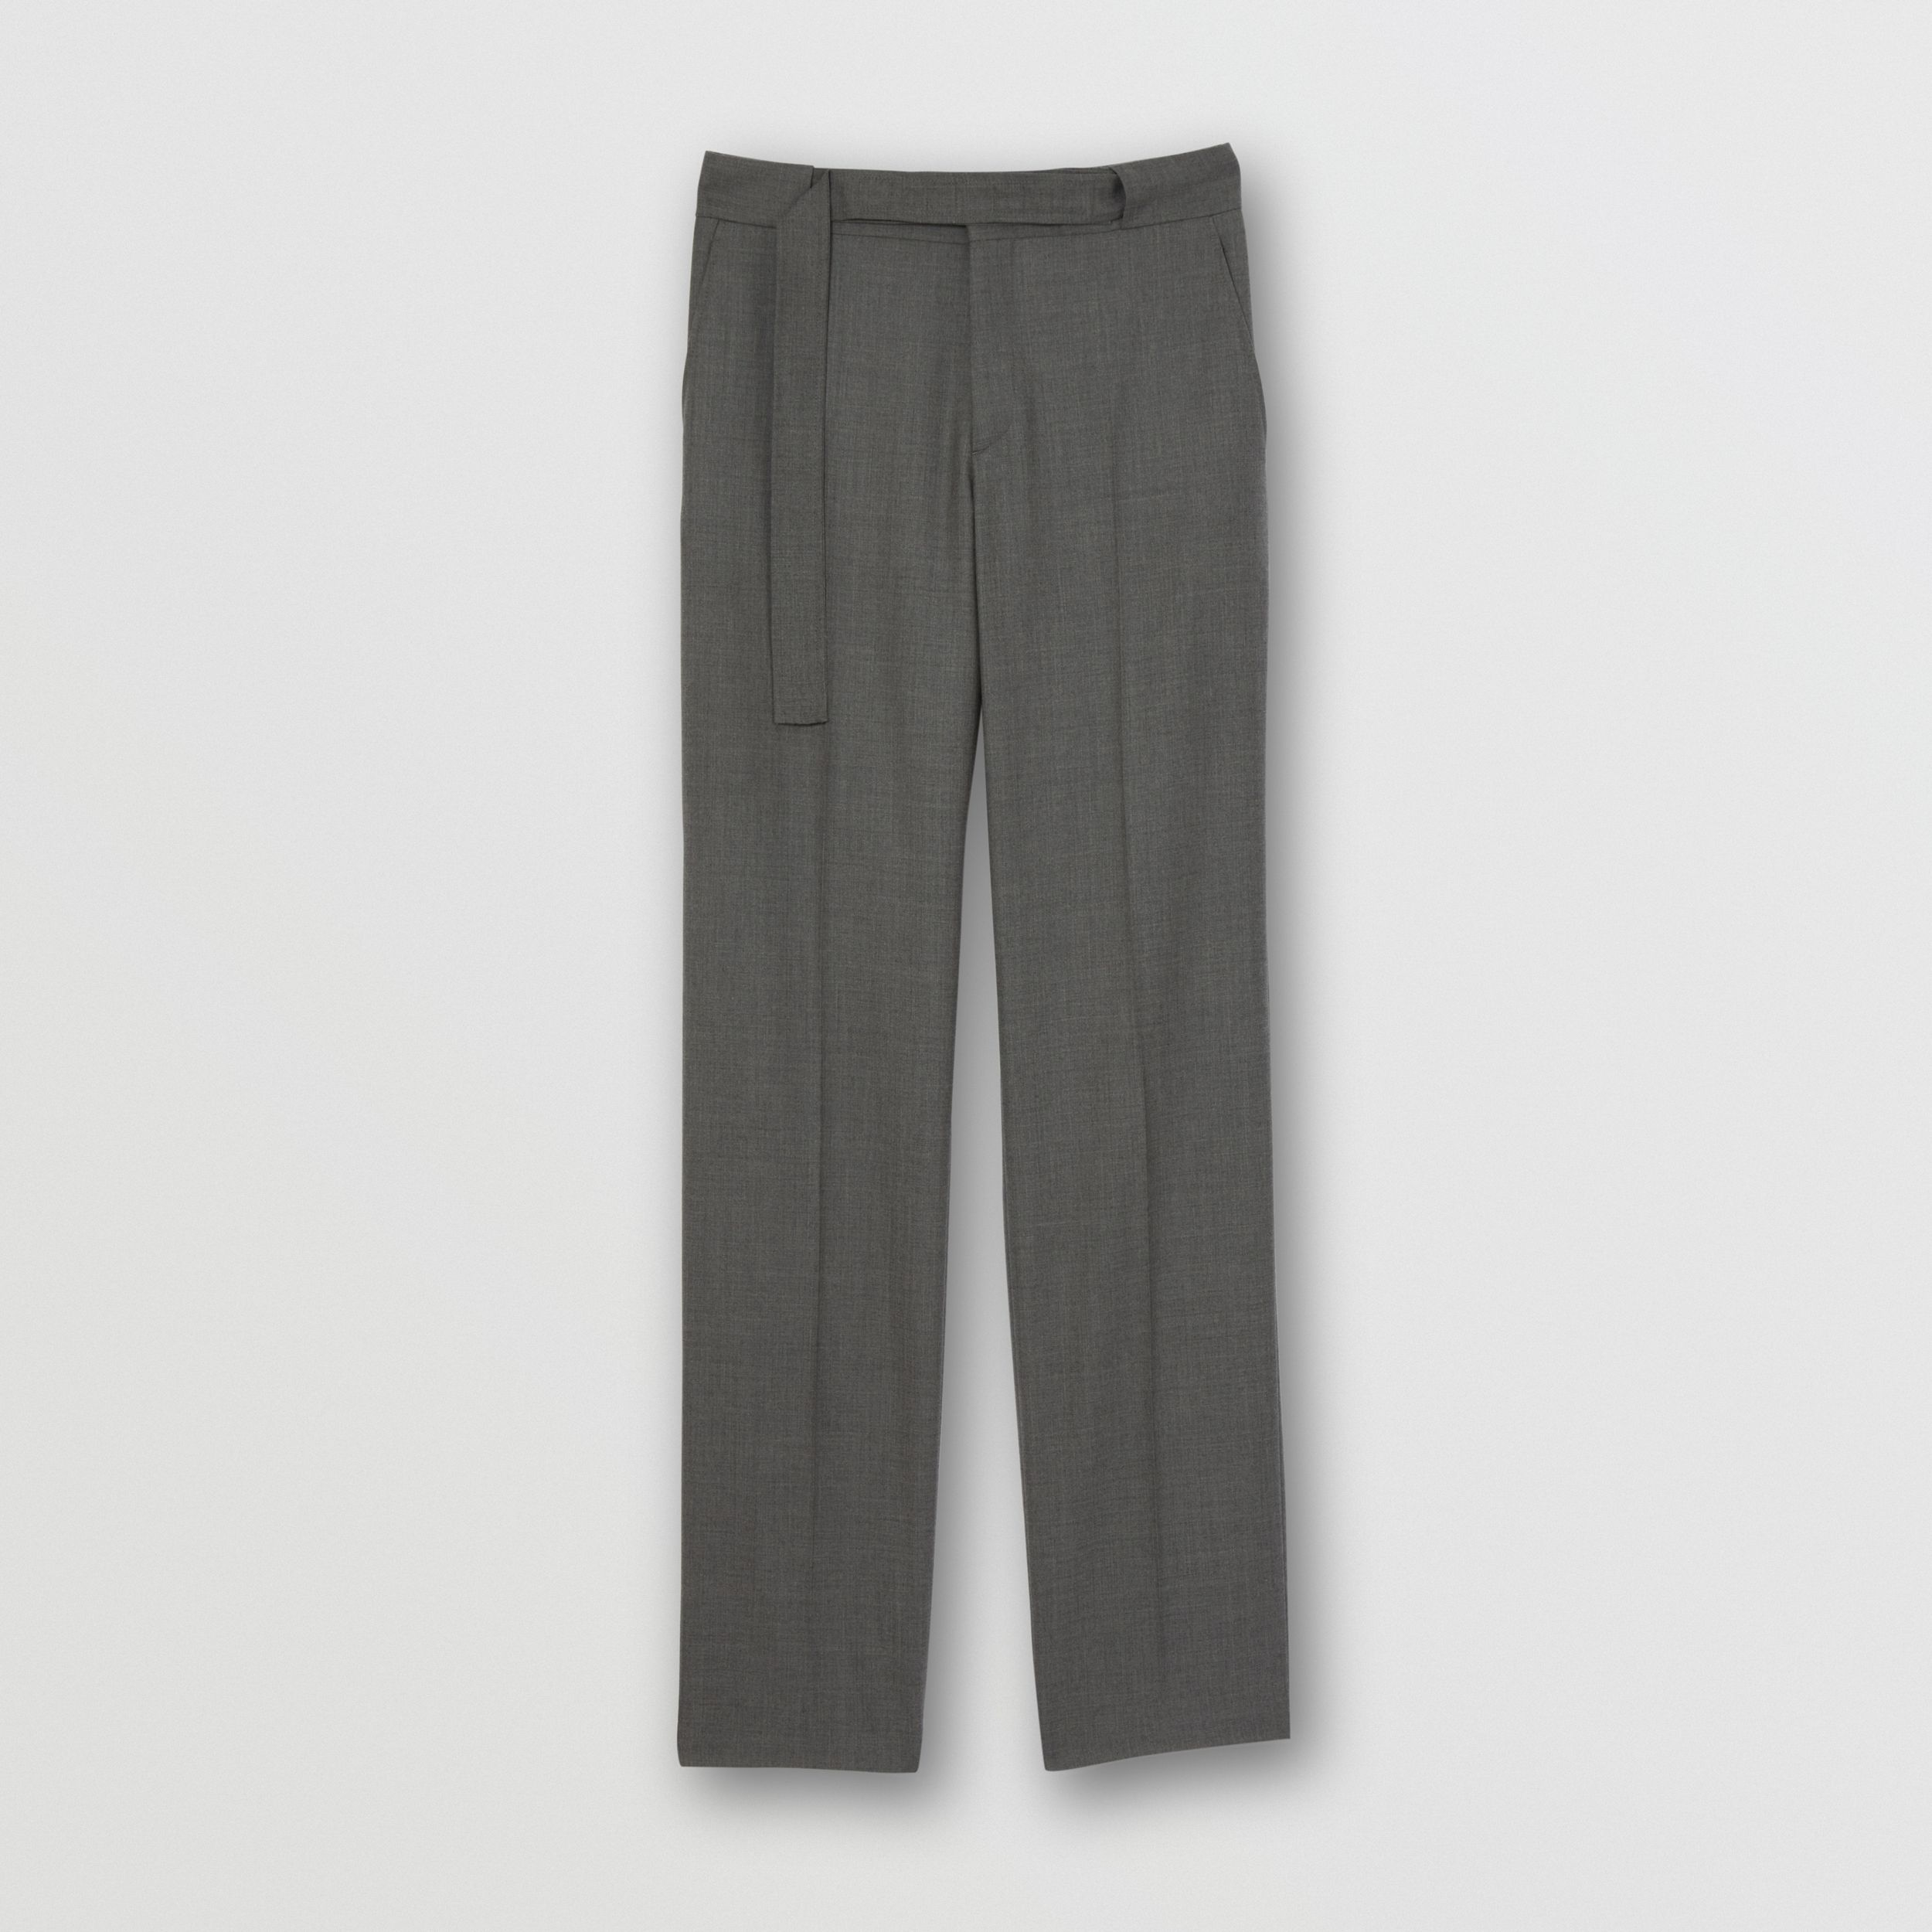 English Fit Belt Detail Wool Tailored Trousers in Charcoal Grey - Men | Burberry - 4